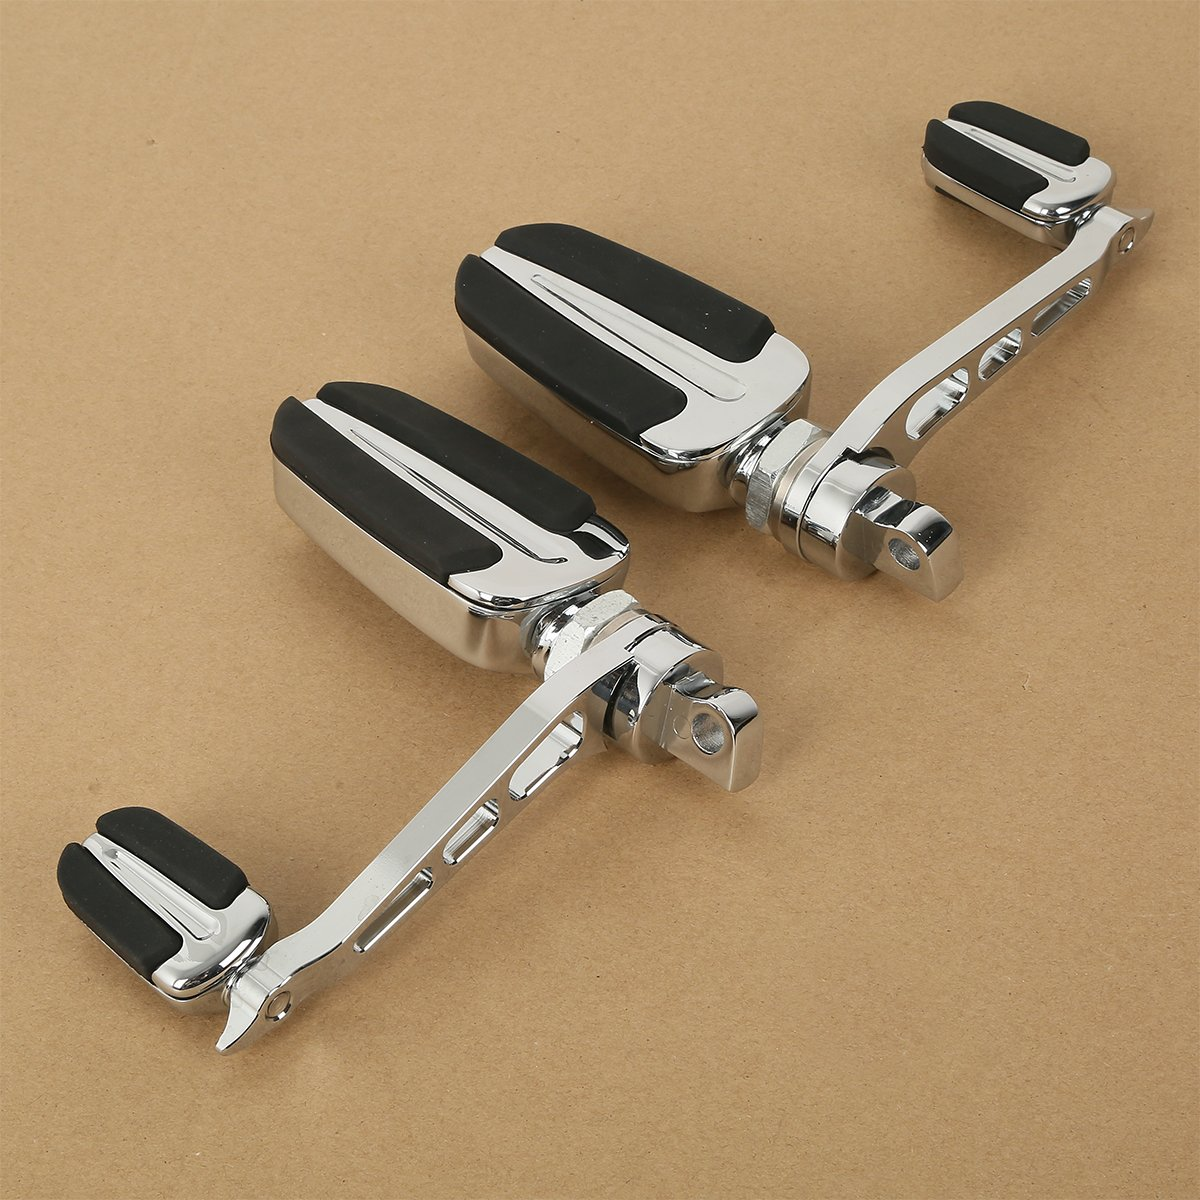 XMT-MOTO Slipstream Male Mount Foot Pegs W/Heel Rest For models with H-D male mount style footpeg supports 4336328138